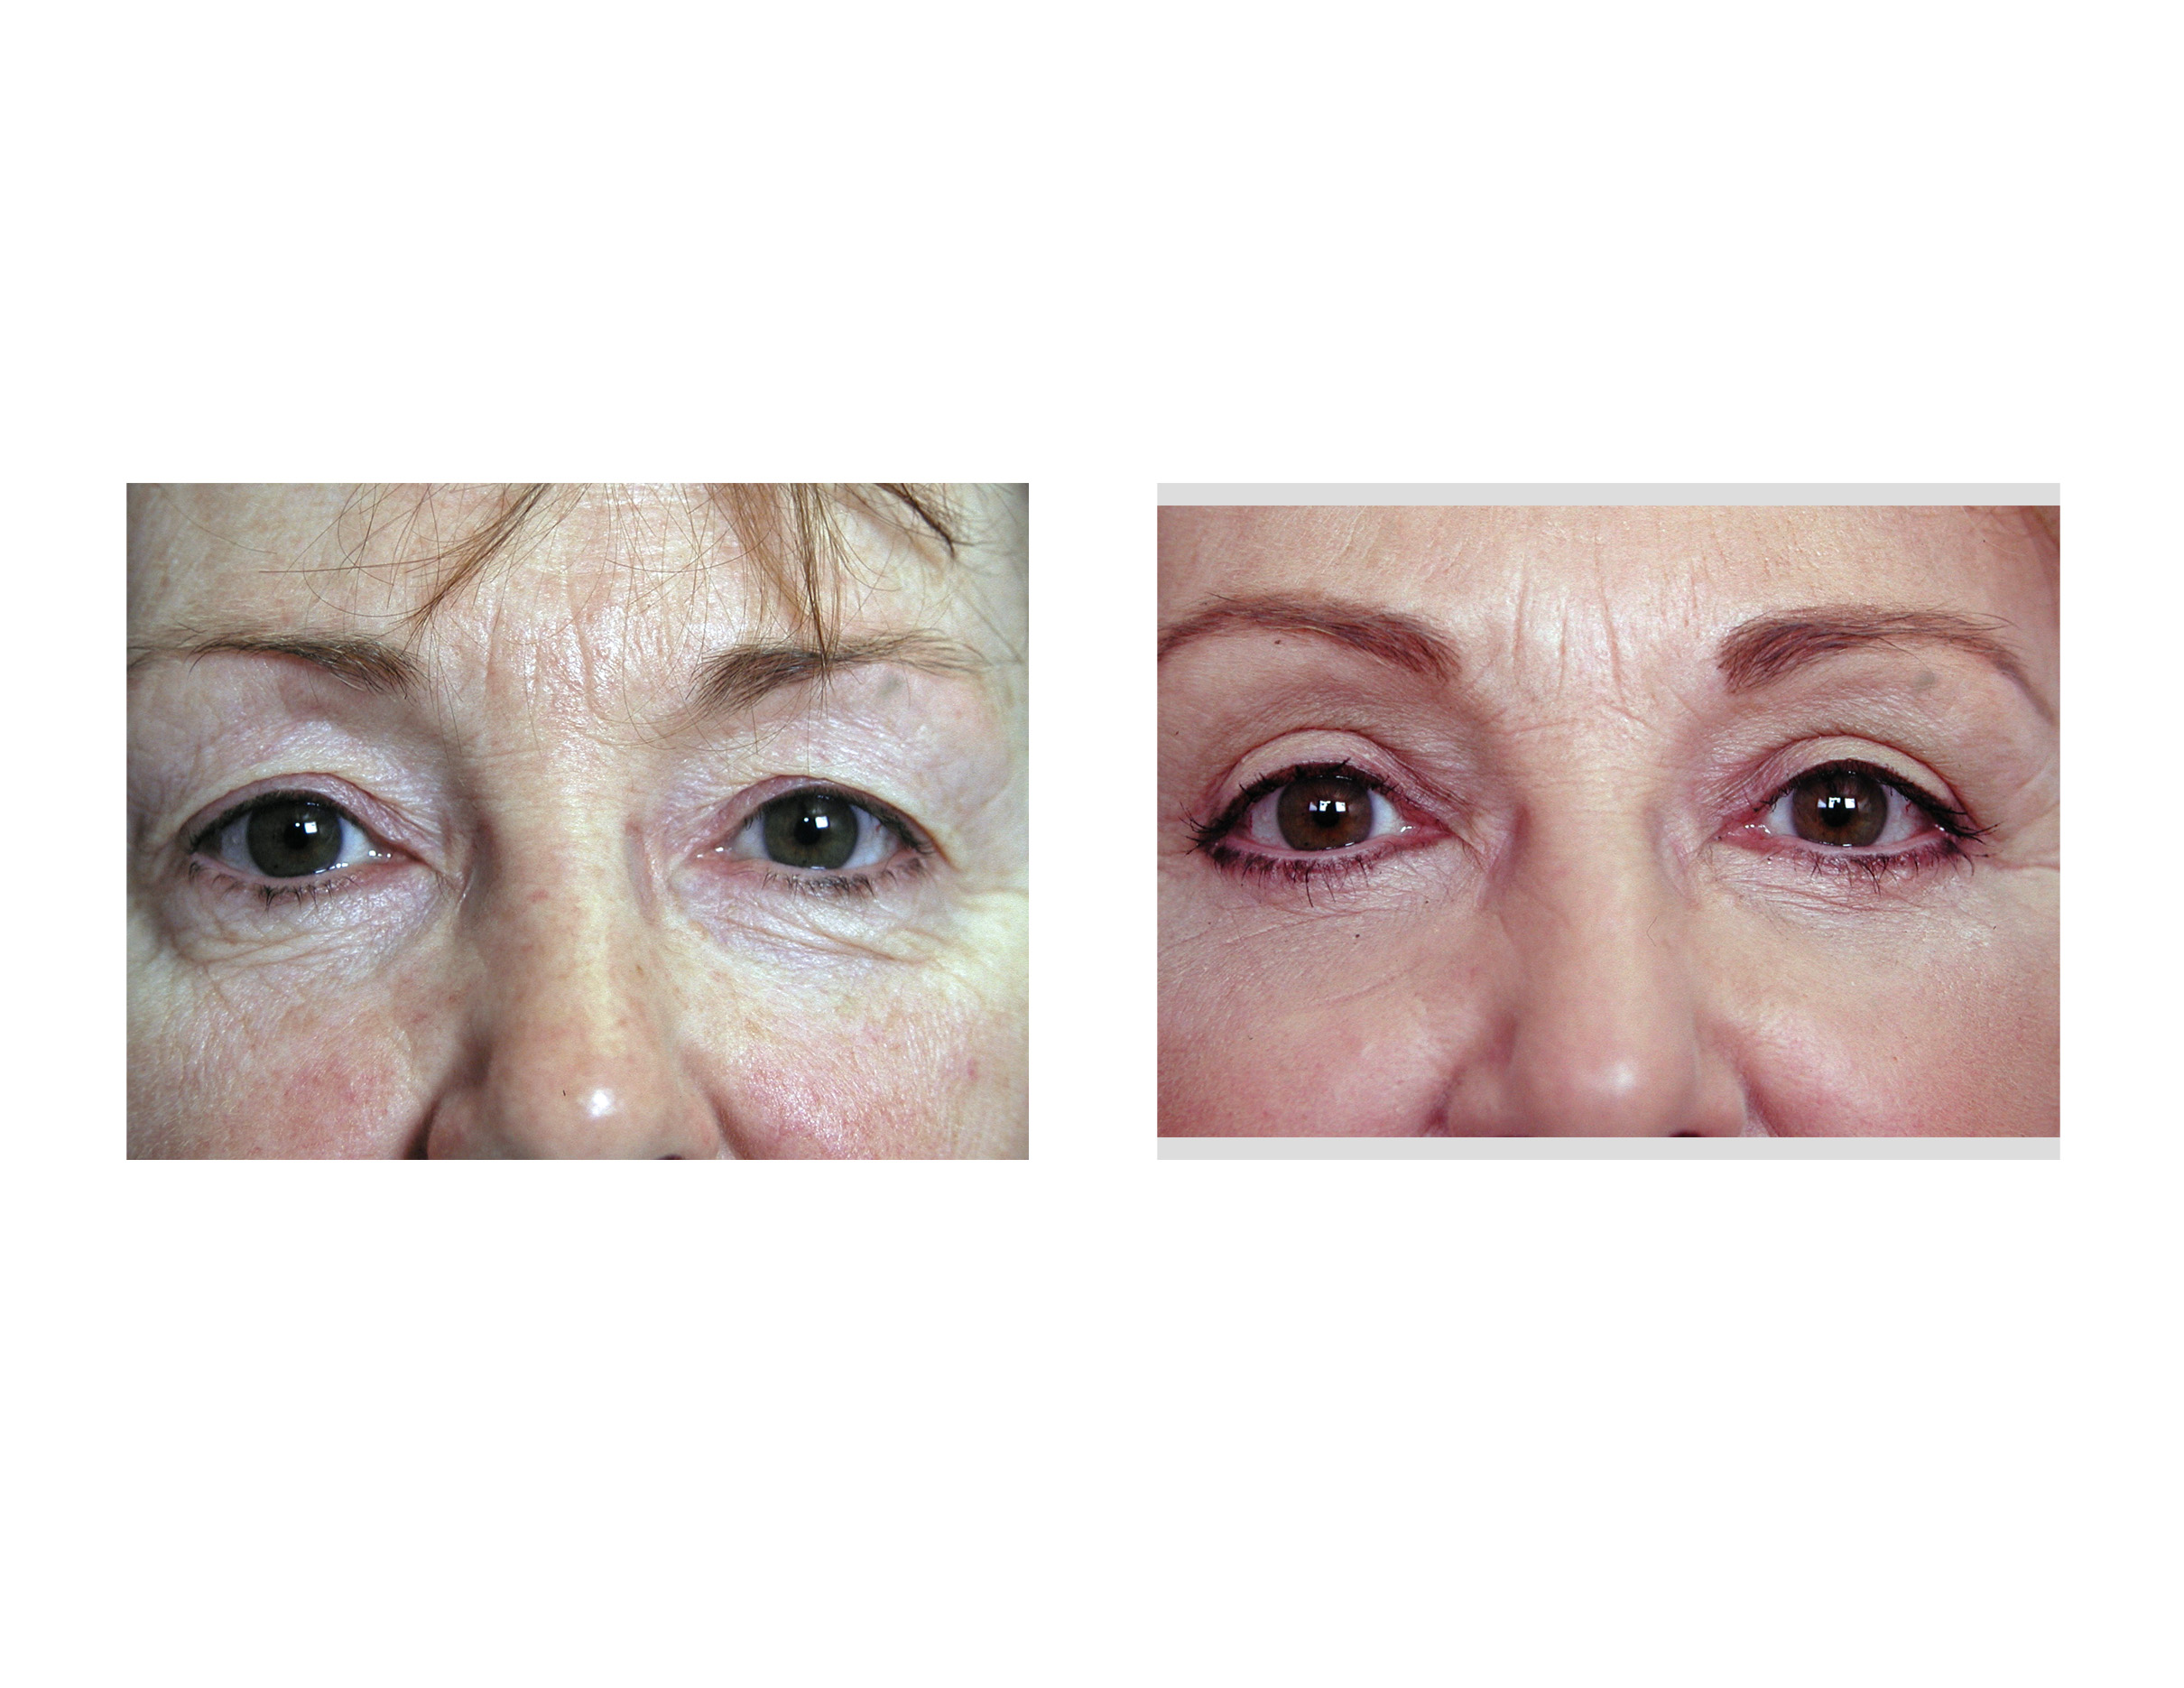 Eyelid surgery pictures healing Together We Served in the U.S. Navy - SEAL Two photo